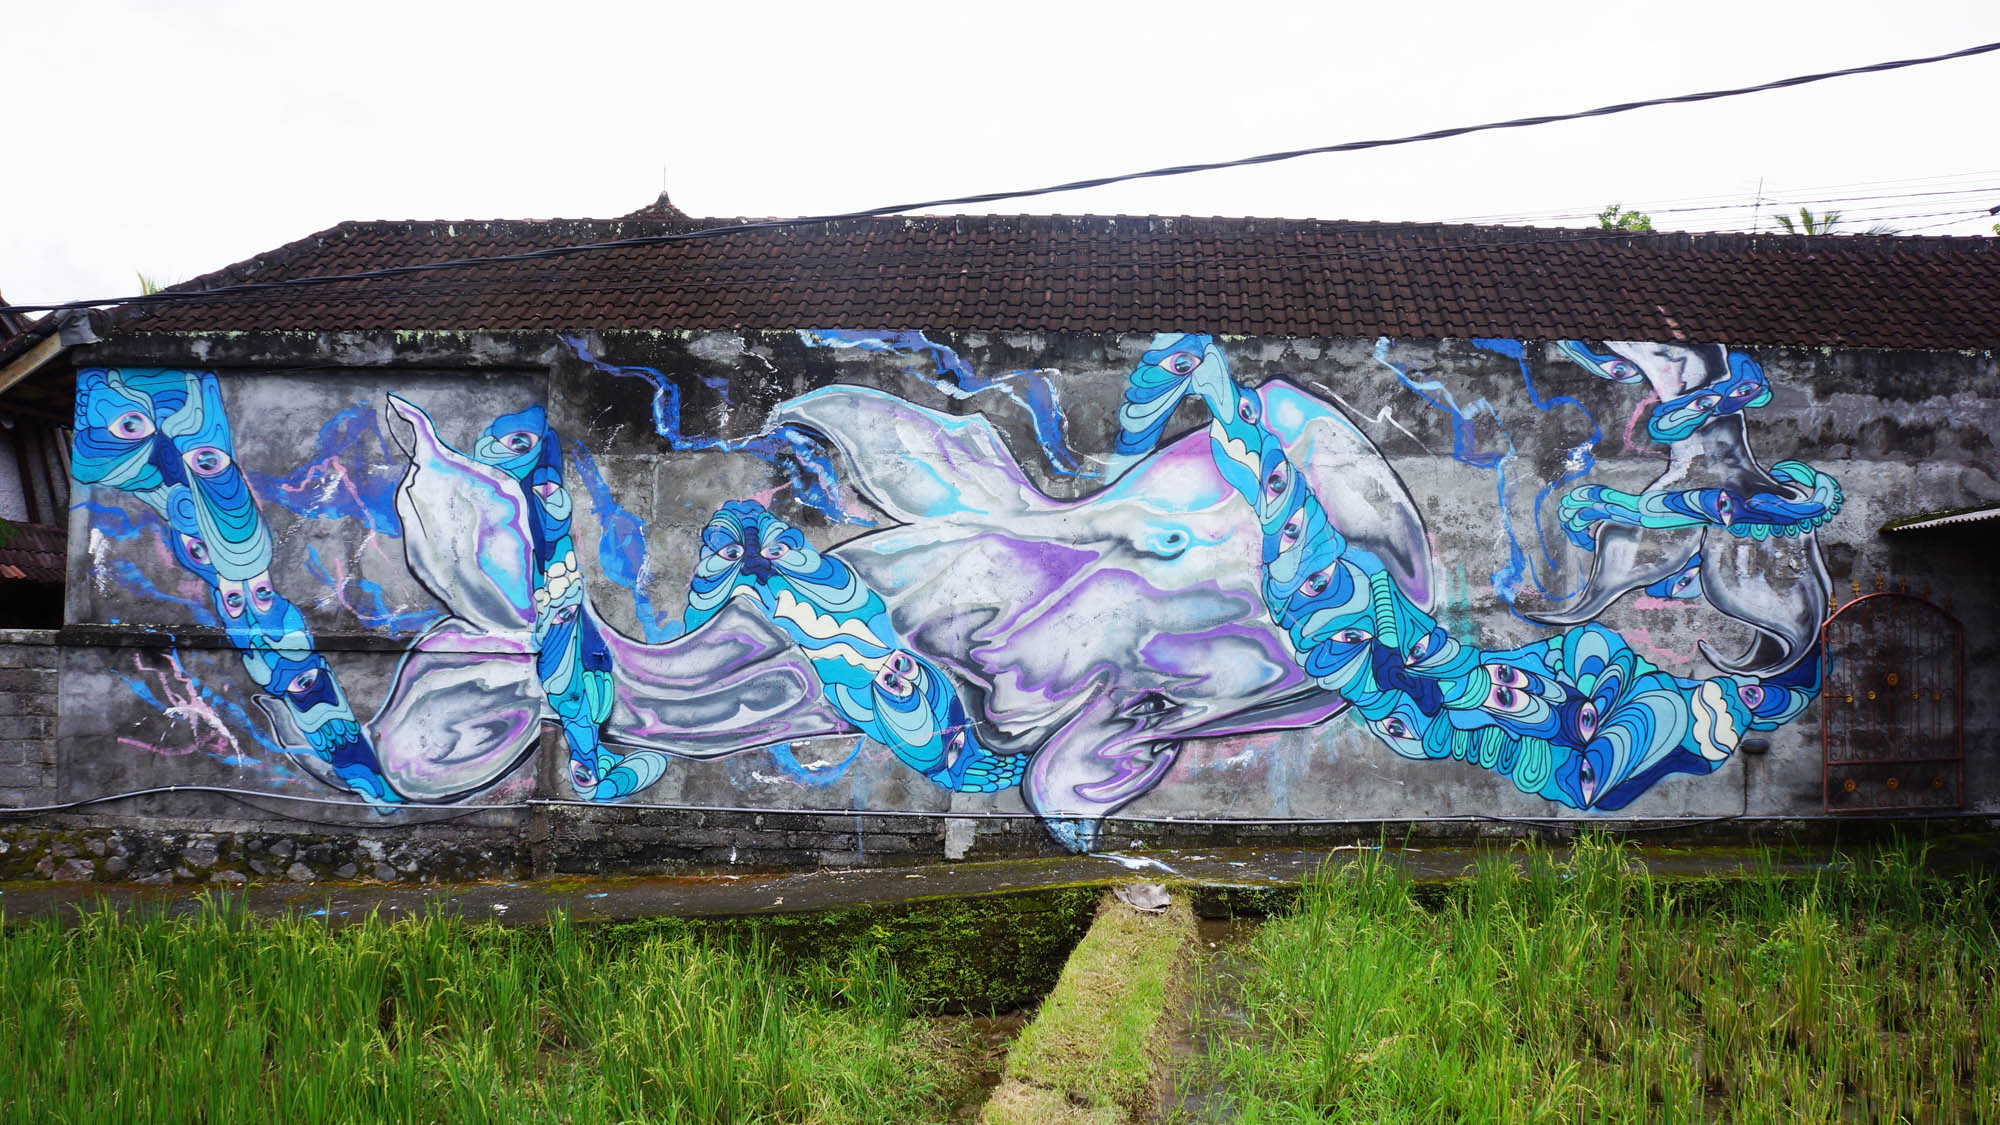 Collaboration with LEZART painted in Ubud, Bali as a part of my artist residency with Cata Odata